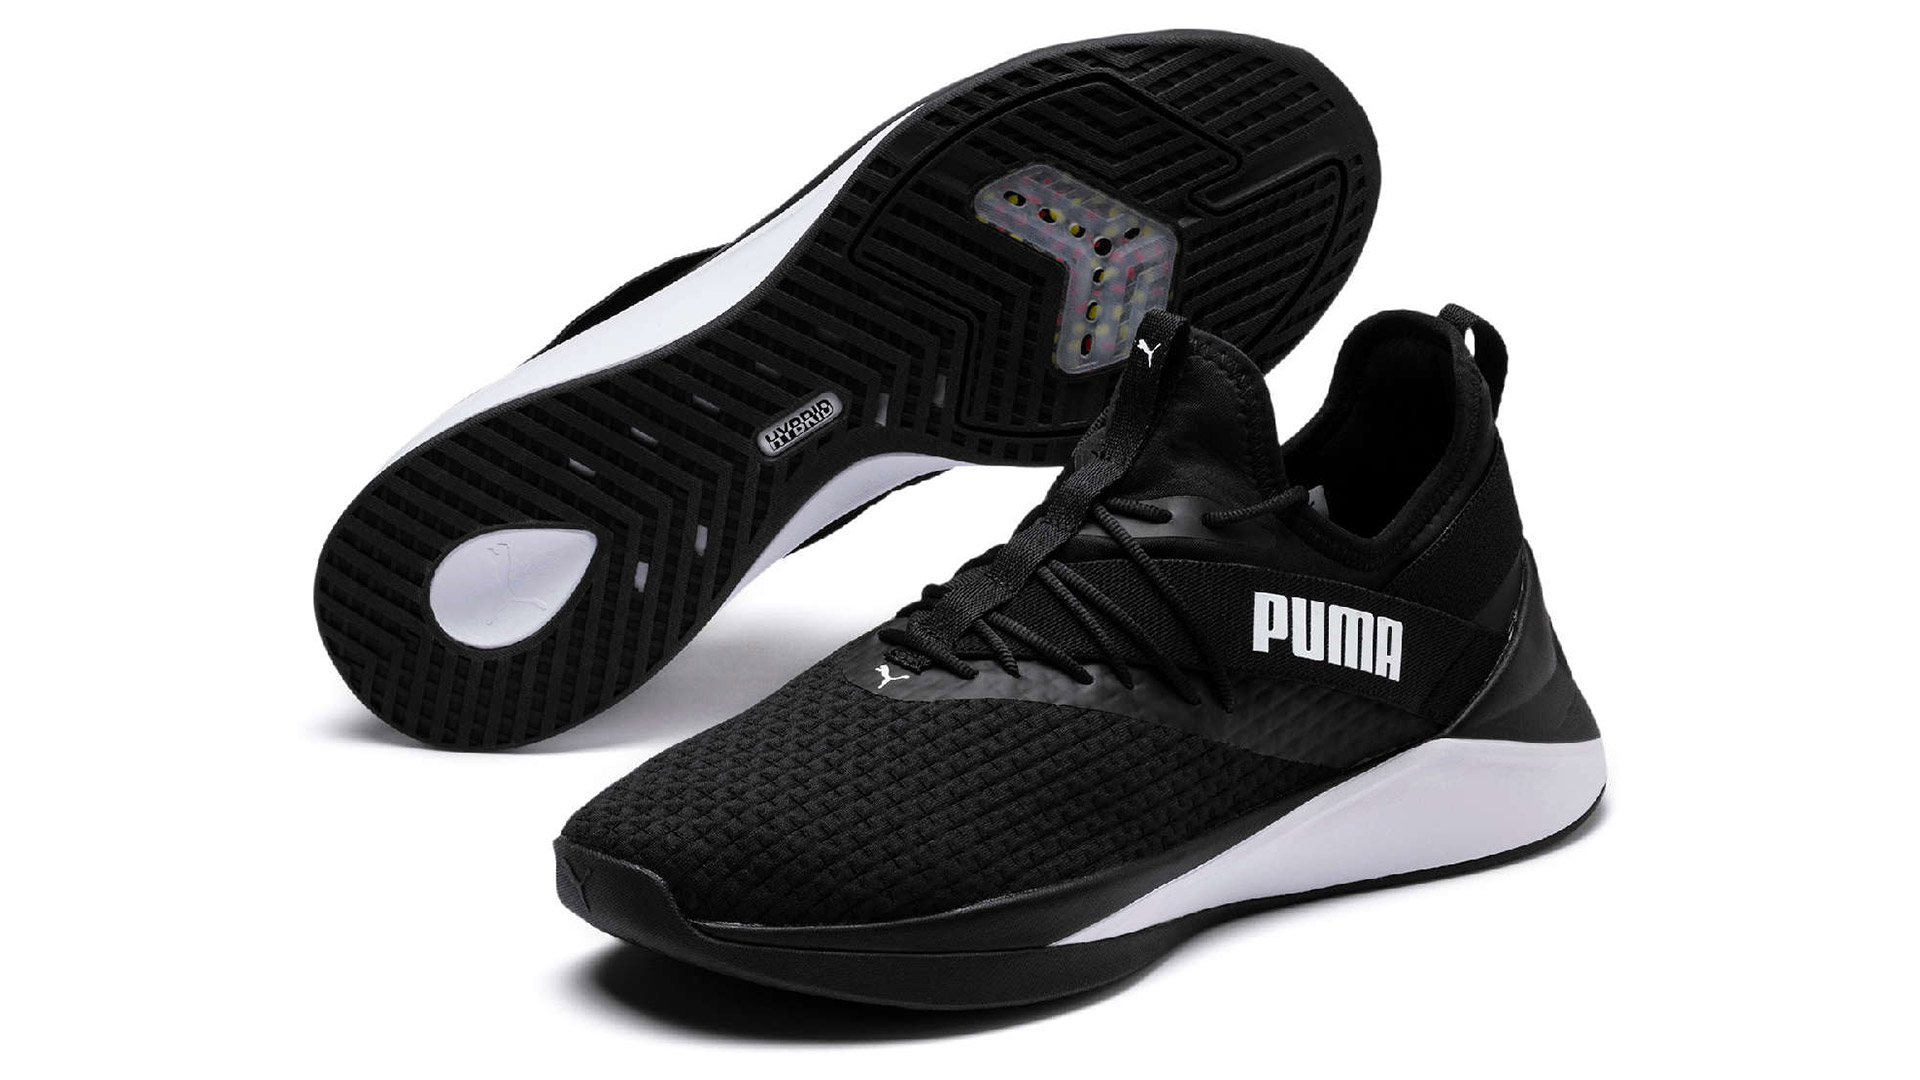 PUMA Jaab XT Training Shoes